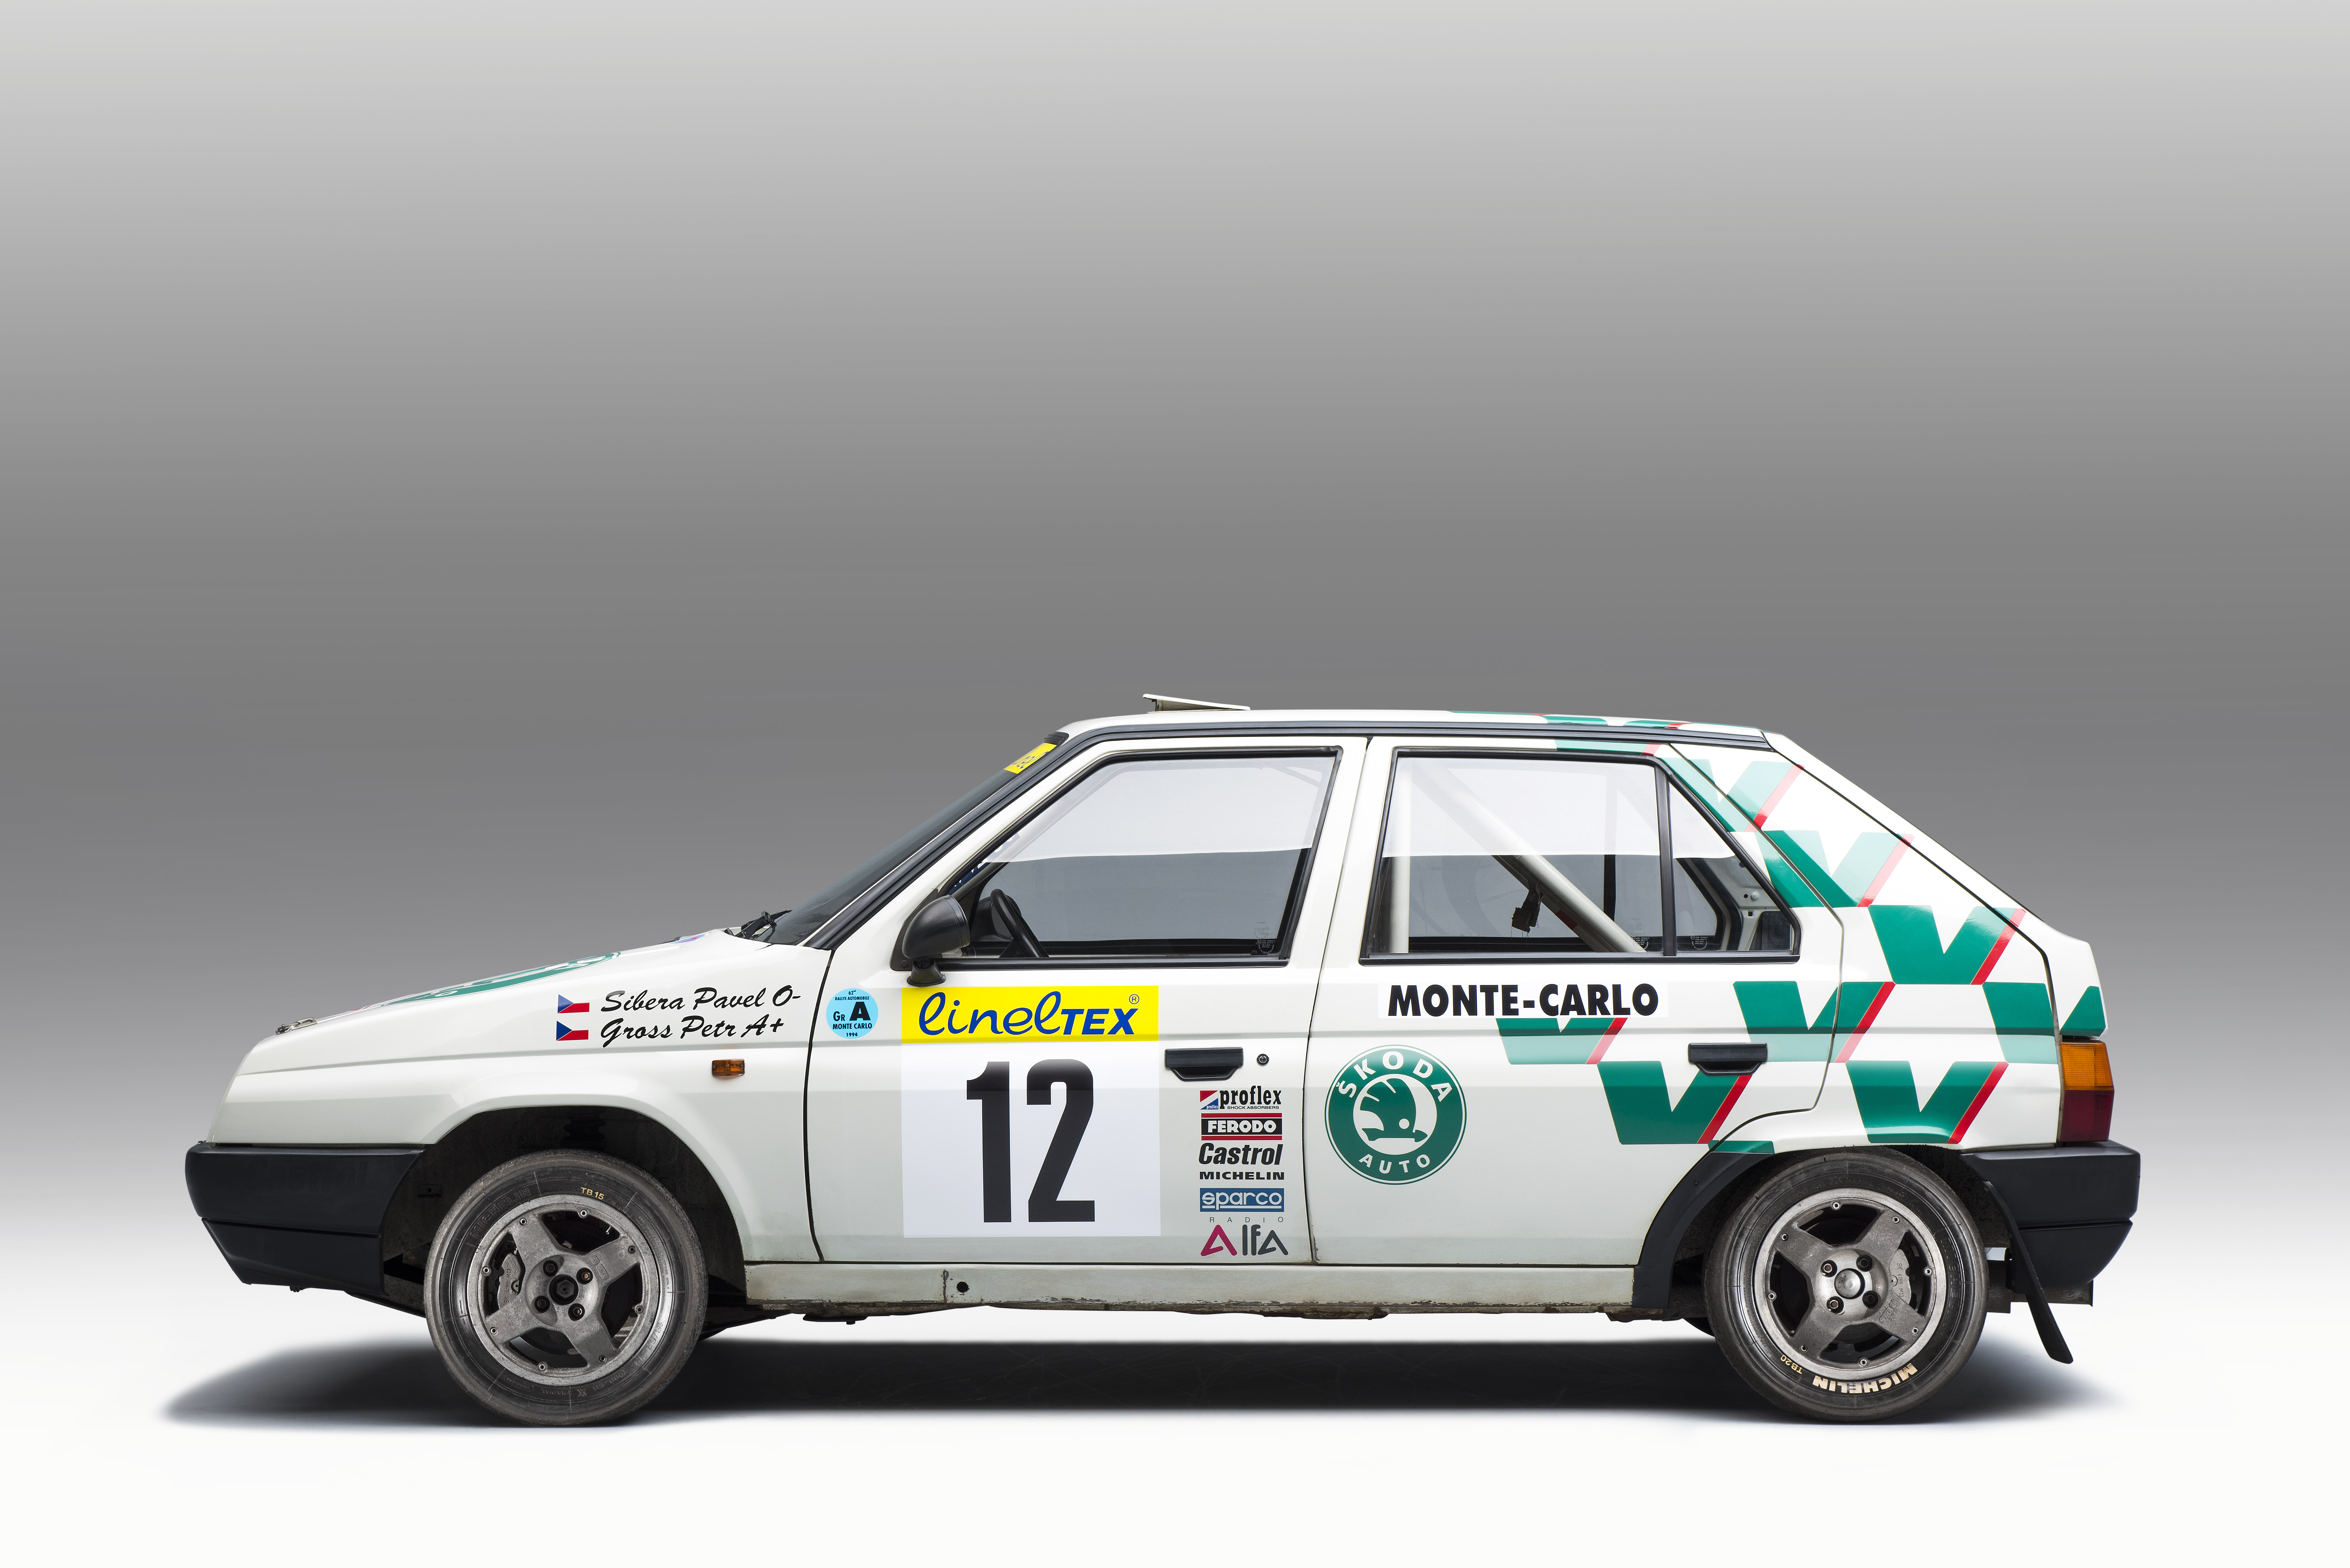 Motorsport versions of the SKODA FAVORIT (1989): All different – and yet familiar - Image 4